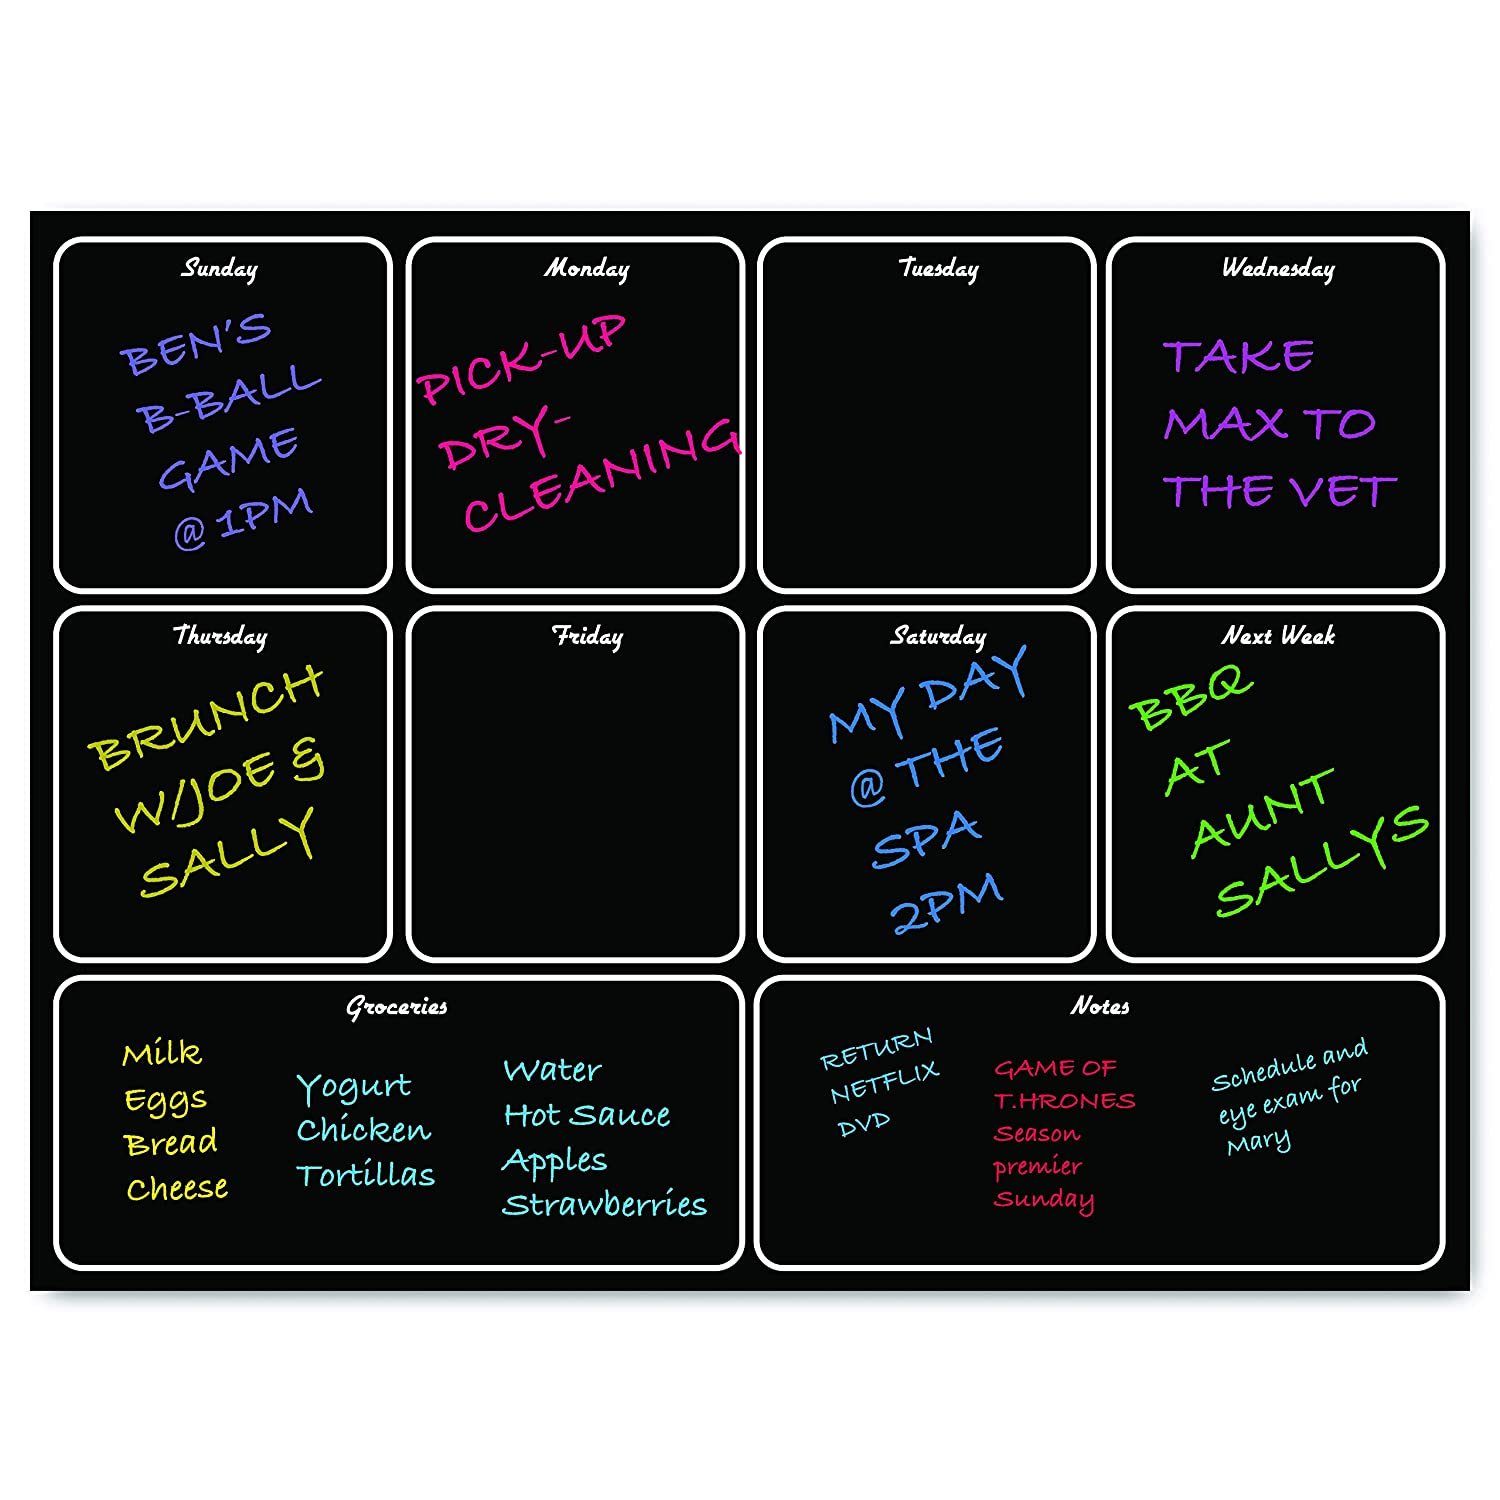 Magnetic Modern Menu Dry Erase Weekly Meal Planner Refrigerator Board with Grocery List and Notes Black